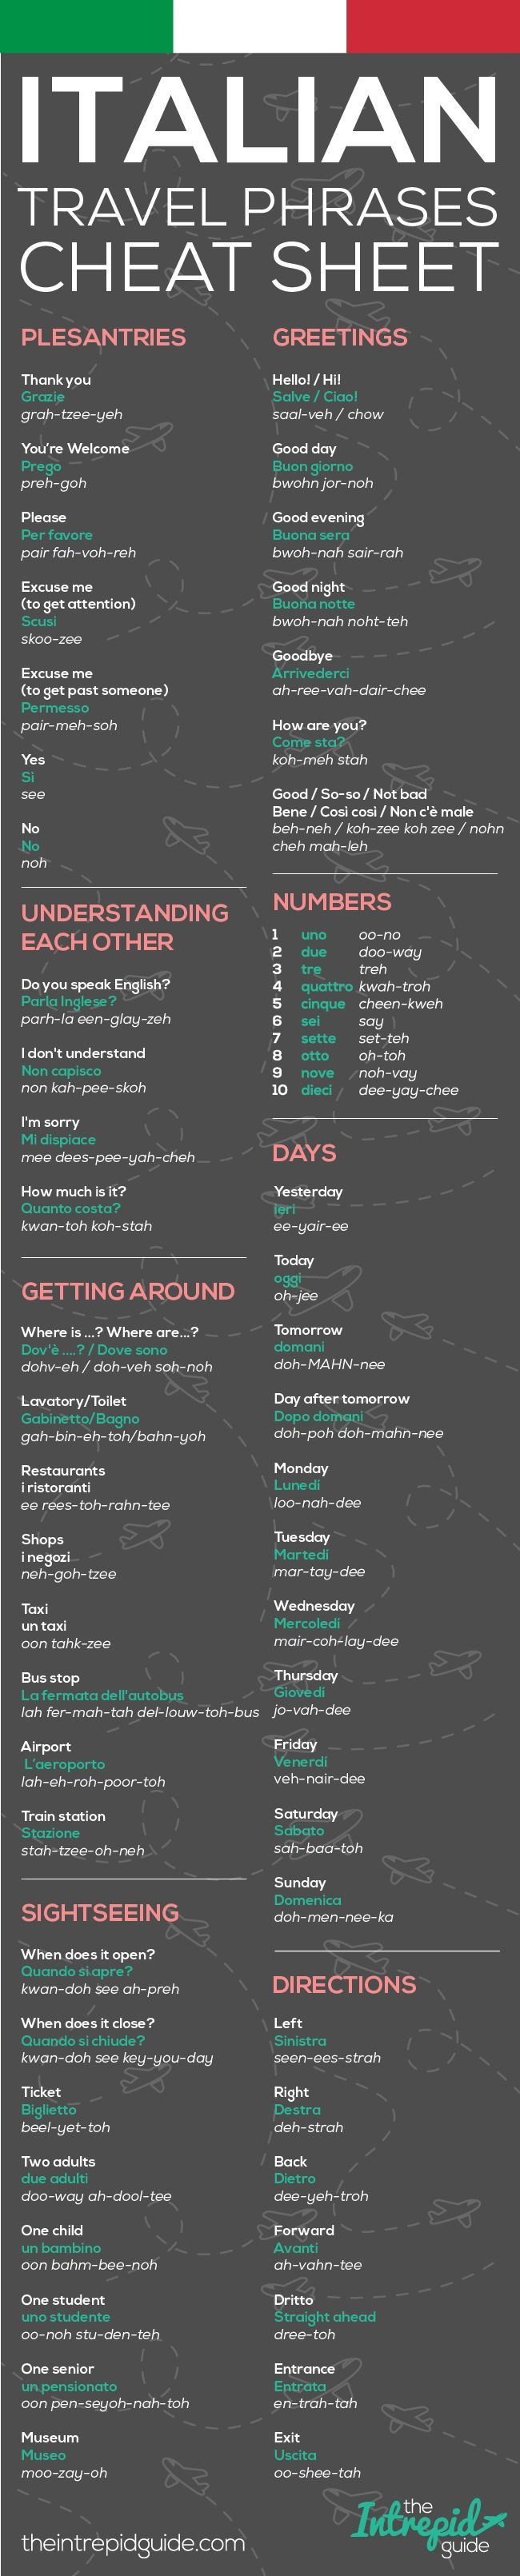 Italian Travel Phrases Cheat Sheet http://www.theintrepidguide.com/?s=italian #fluffyhero9